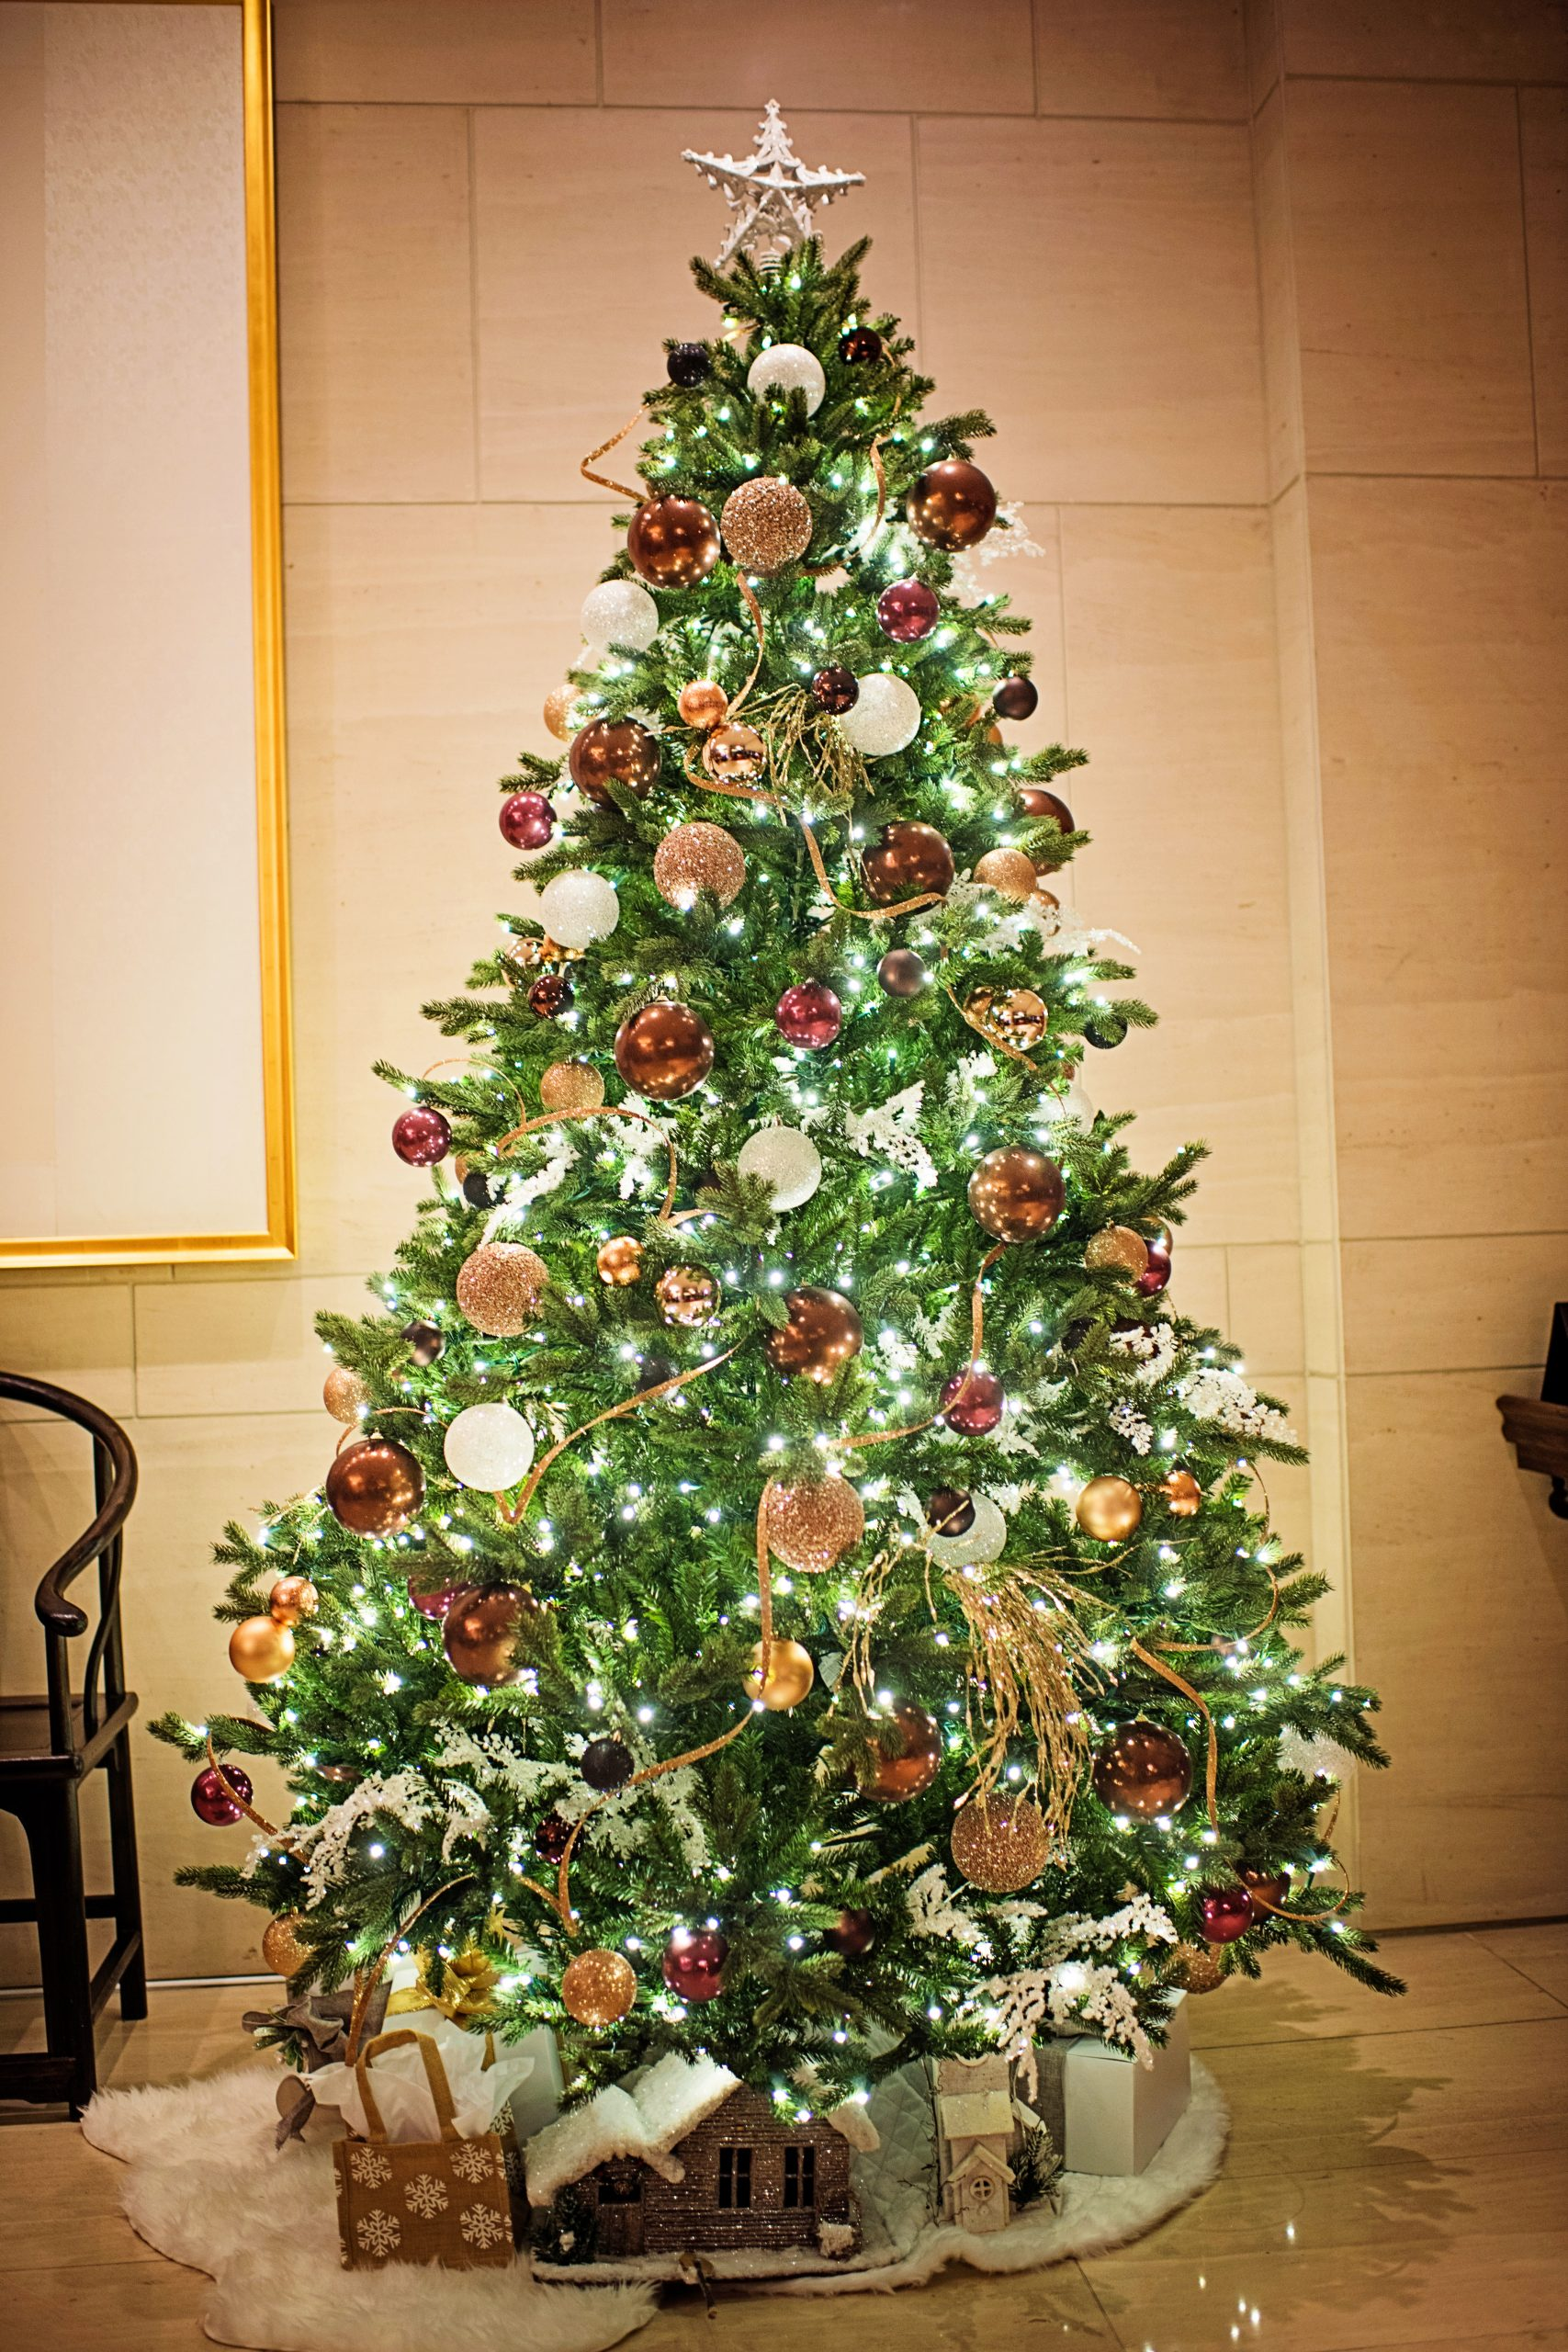 commercial christmas tree in hotel lobby with west coast gilded theme decor